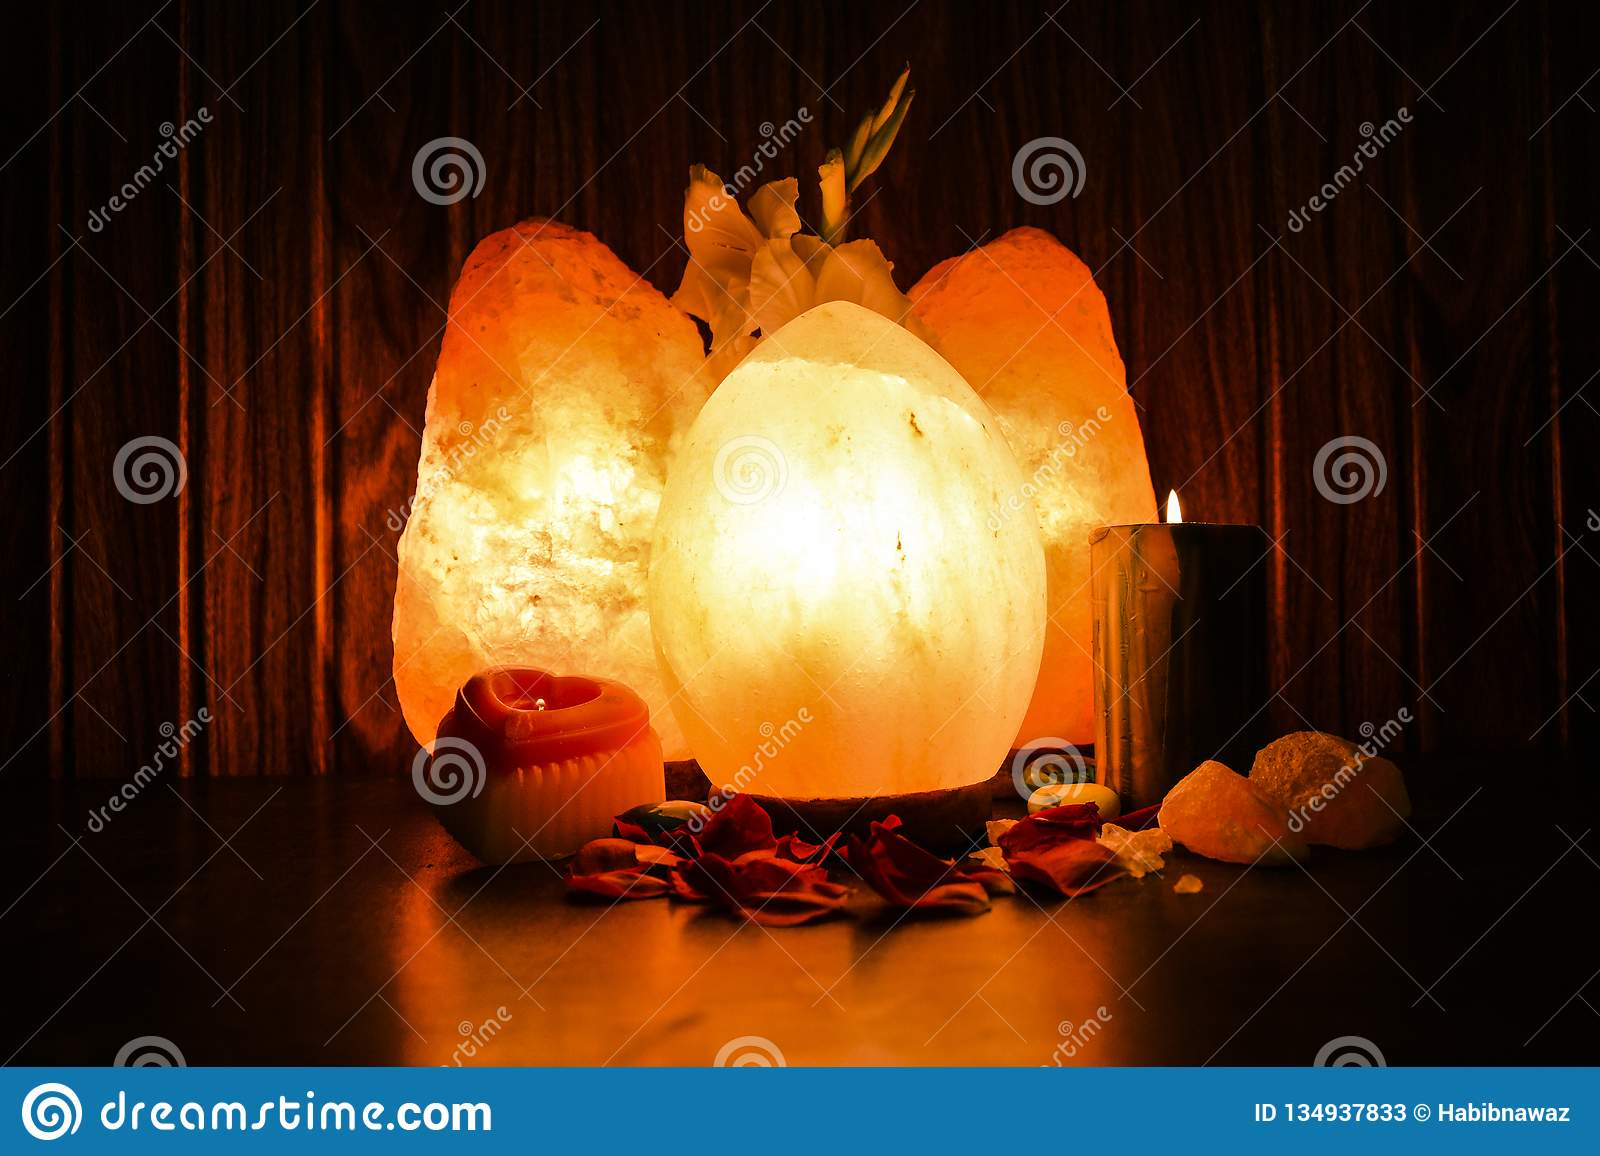 Egg & Natural Salt Lamps | Himalayan Salt Stock Image - Image of